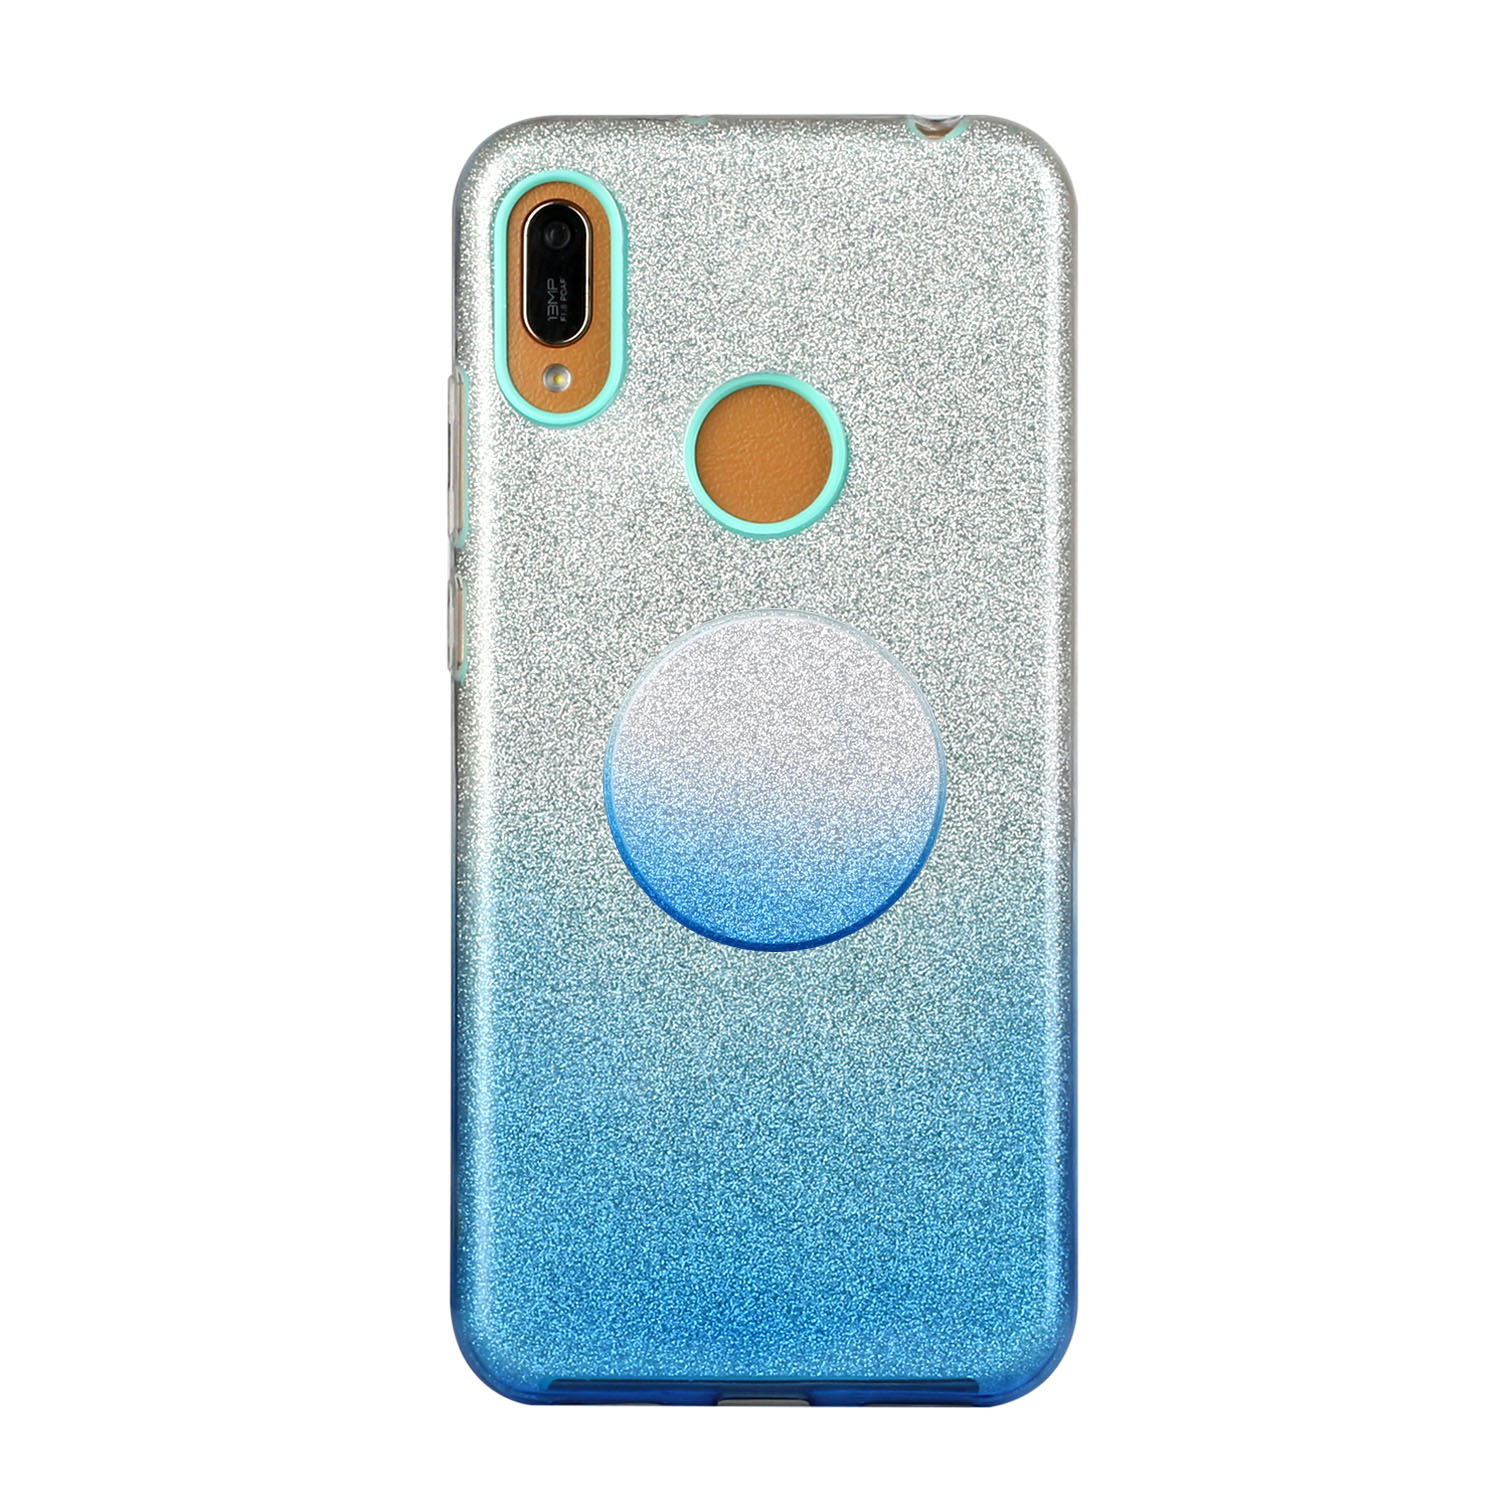 for HUAWEI Y5 2019/HONOR 8S/Y5/PSmart/honor 10 LITE Phone Case Gradient Color Glitter Powder Phone Cover with Airbag Bracket blue